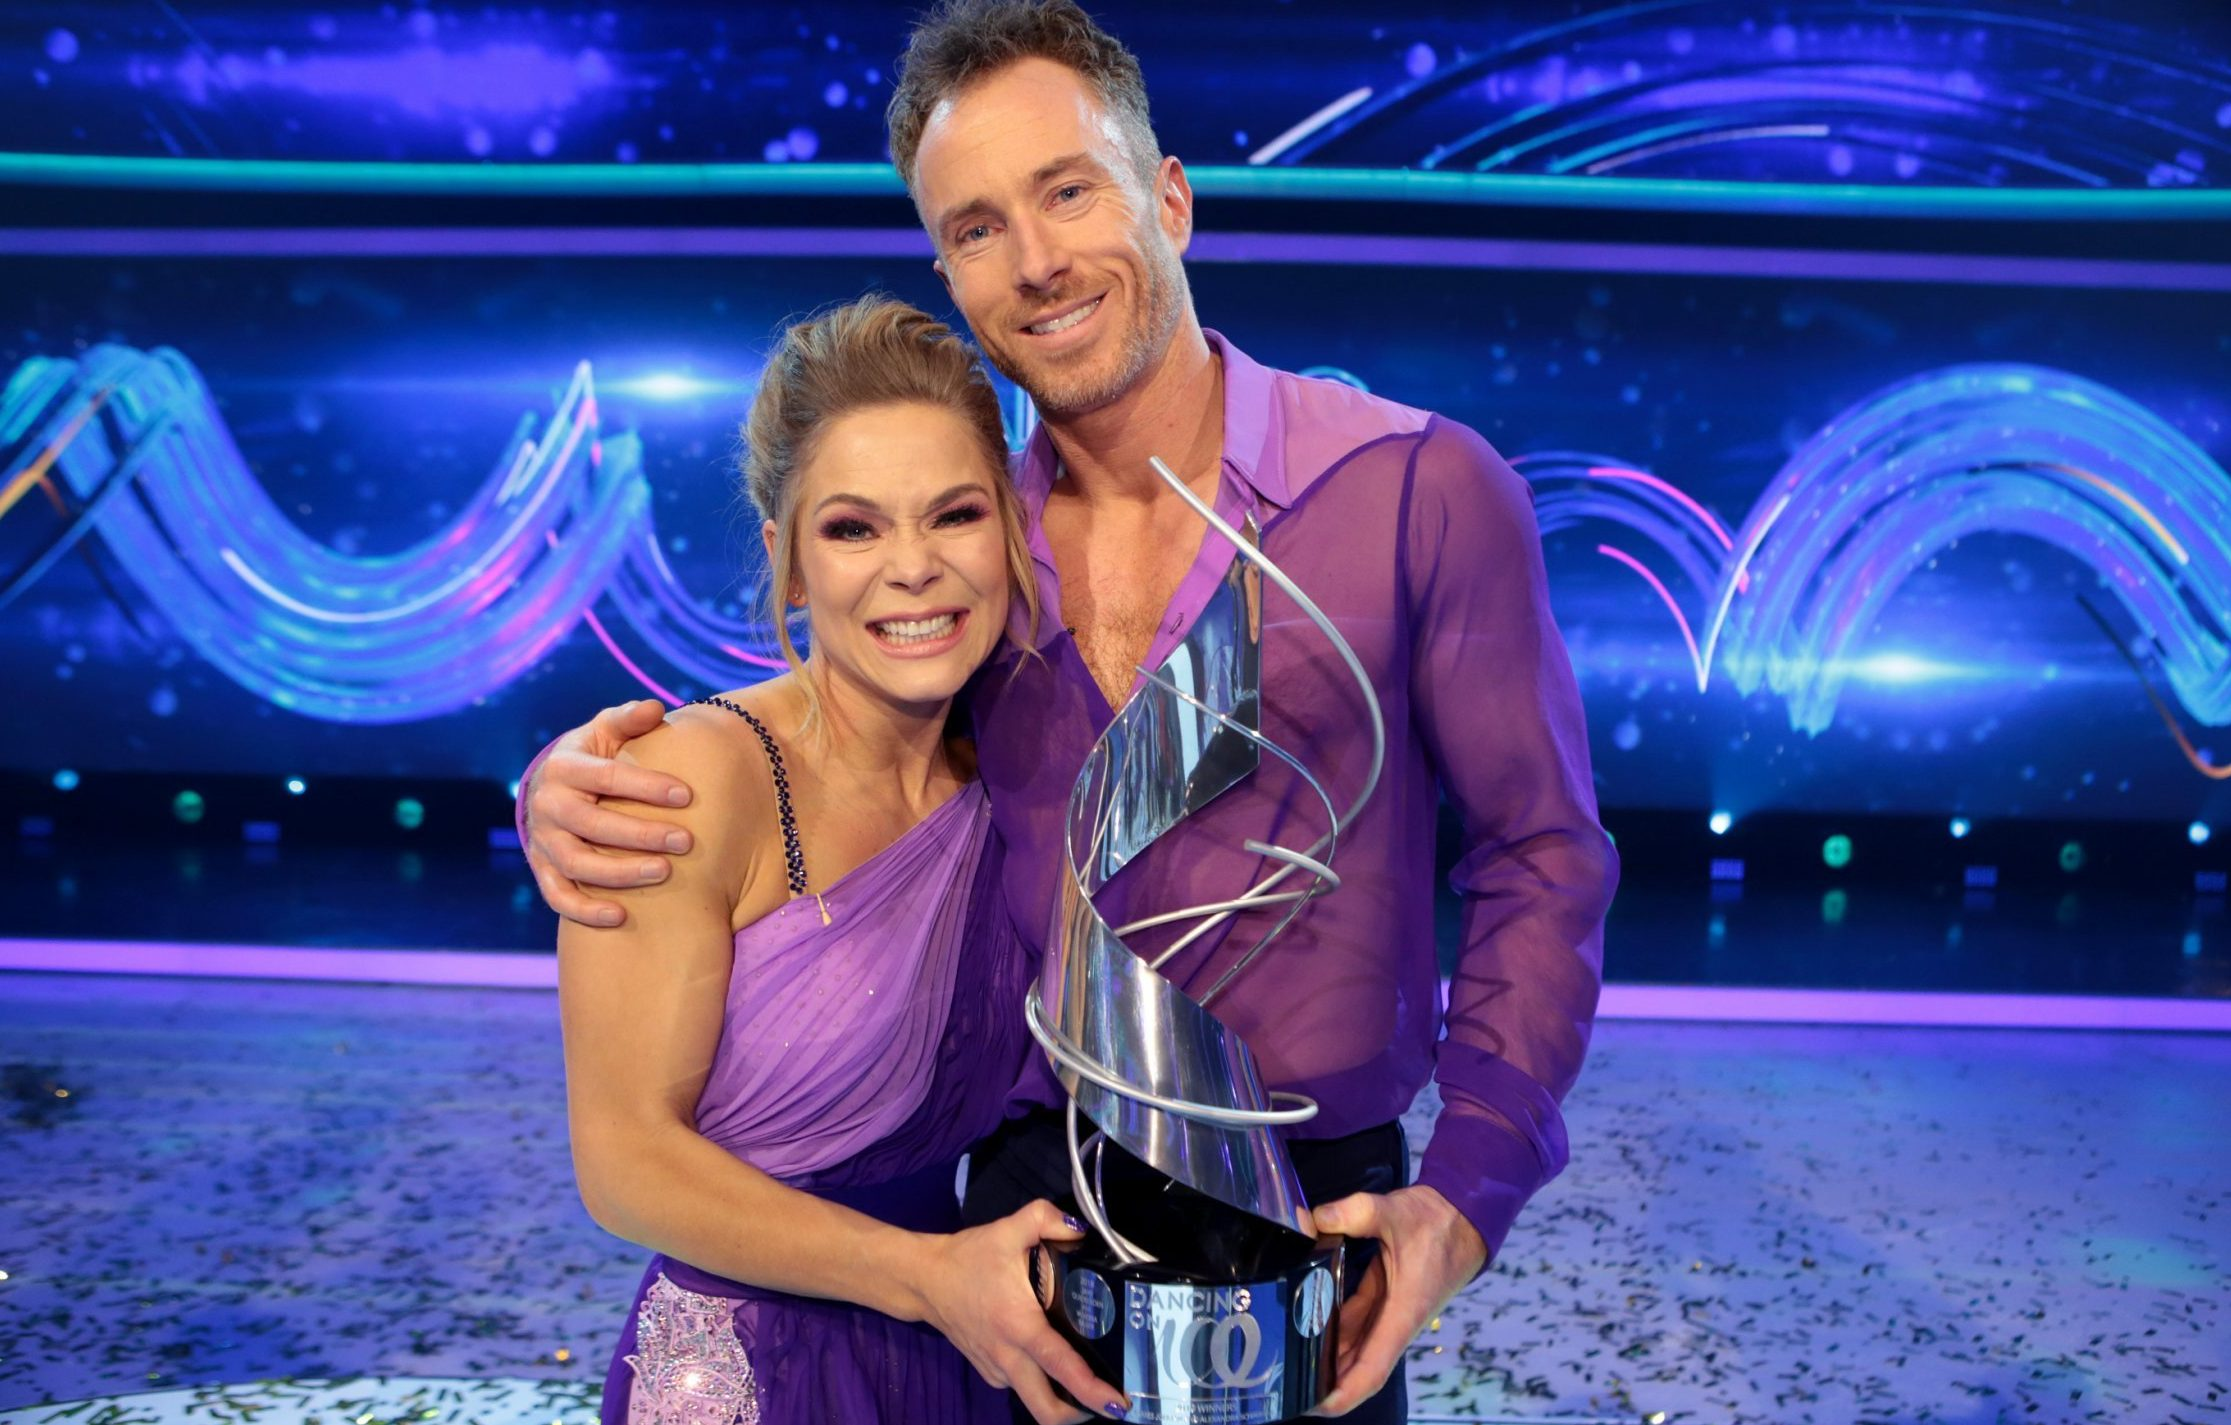 Will there be another series of Dancing On Ice in 2020?